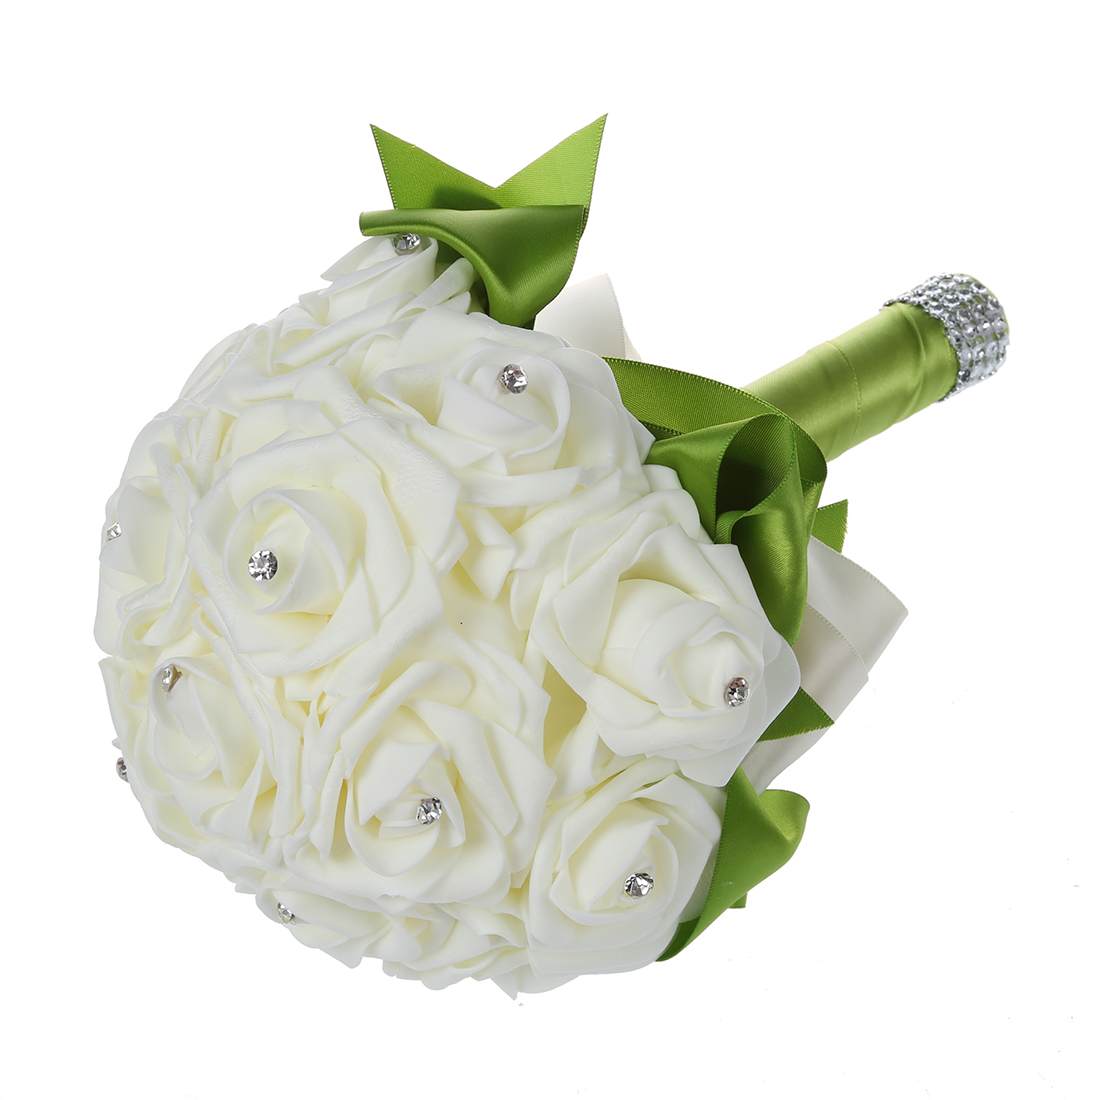 Boutique beautiful wedding bouquet bridal bridesmaid flower boutique beautiful wedding bouquet bridal bridesmaid flower artificial flower rose bouquet white bridal bouquets green ribbon in artificial dried flowers izmirmasajfo